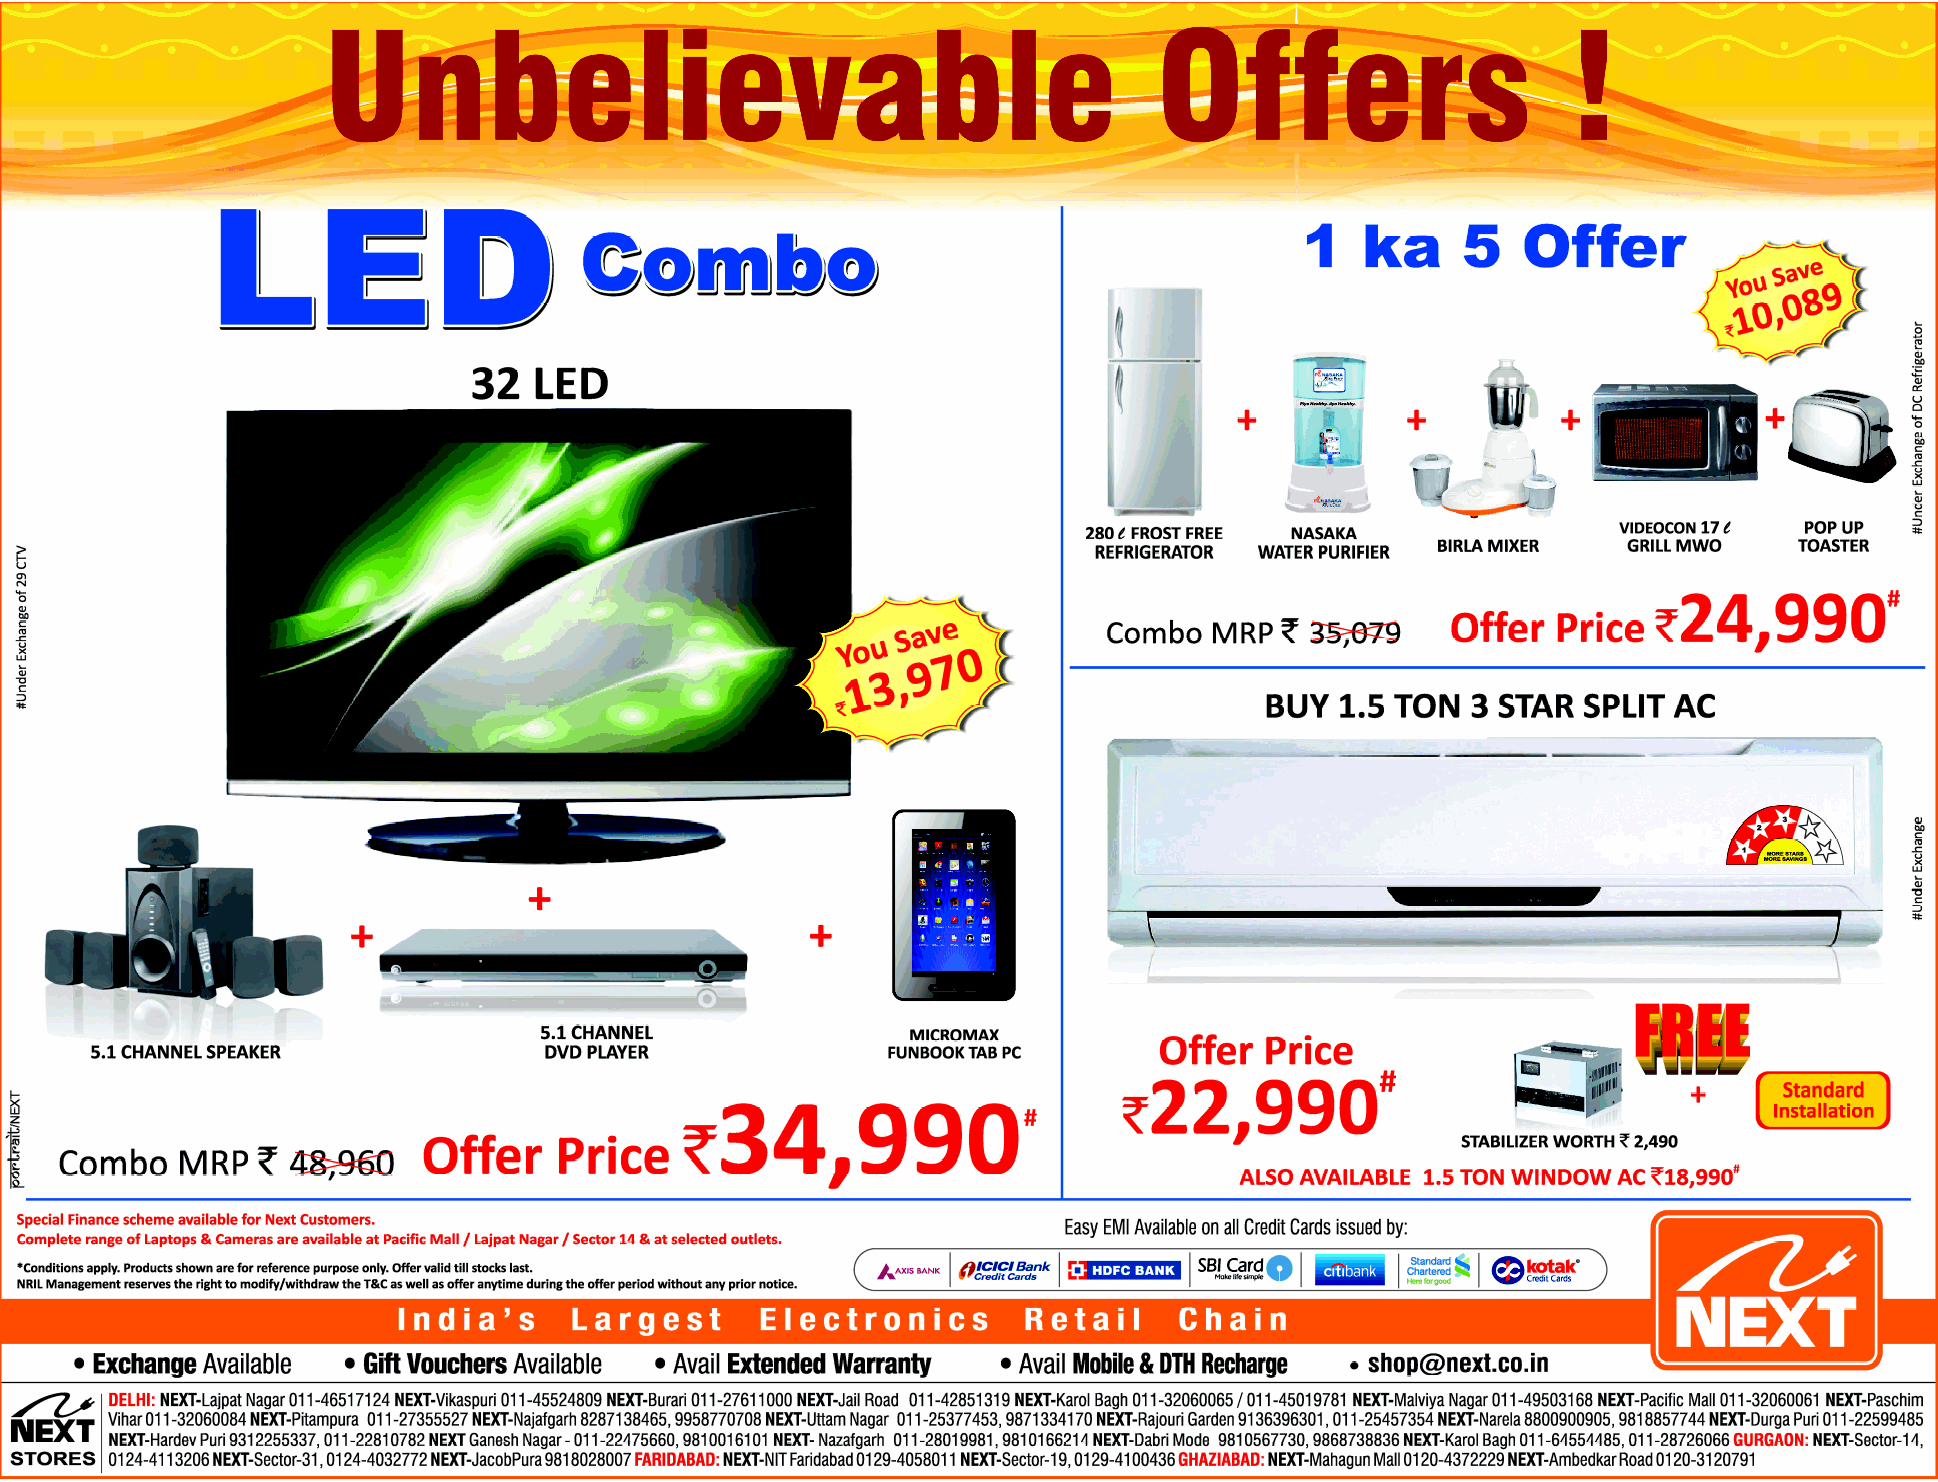 Next Electronics - Unbelievable Offers